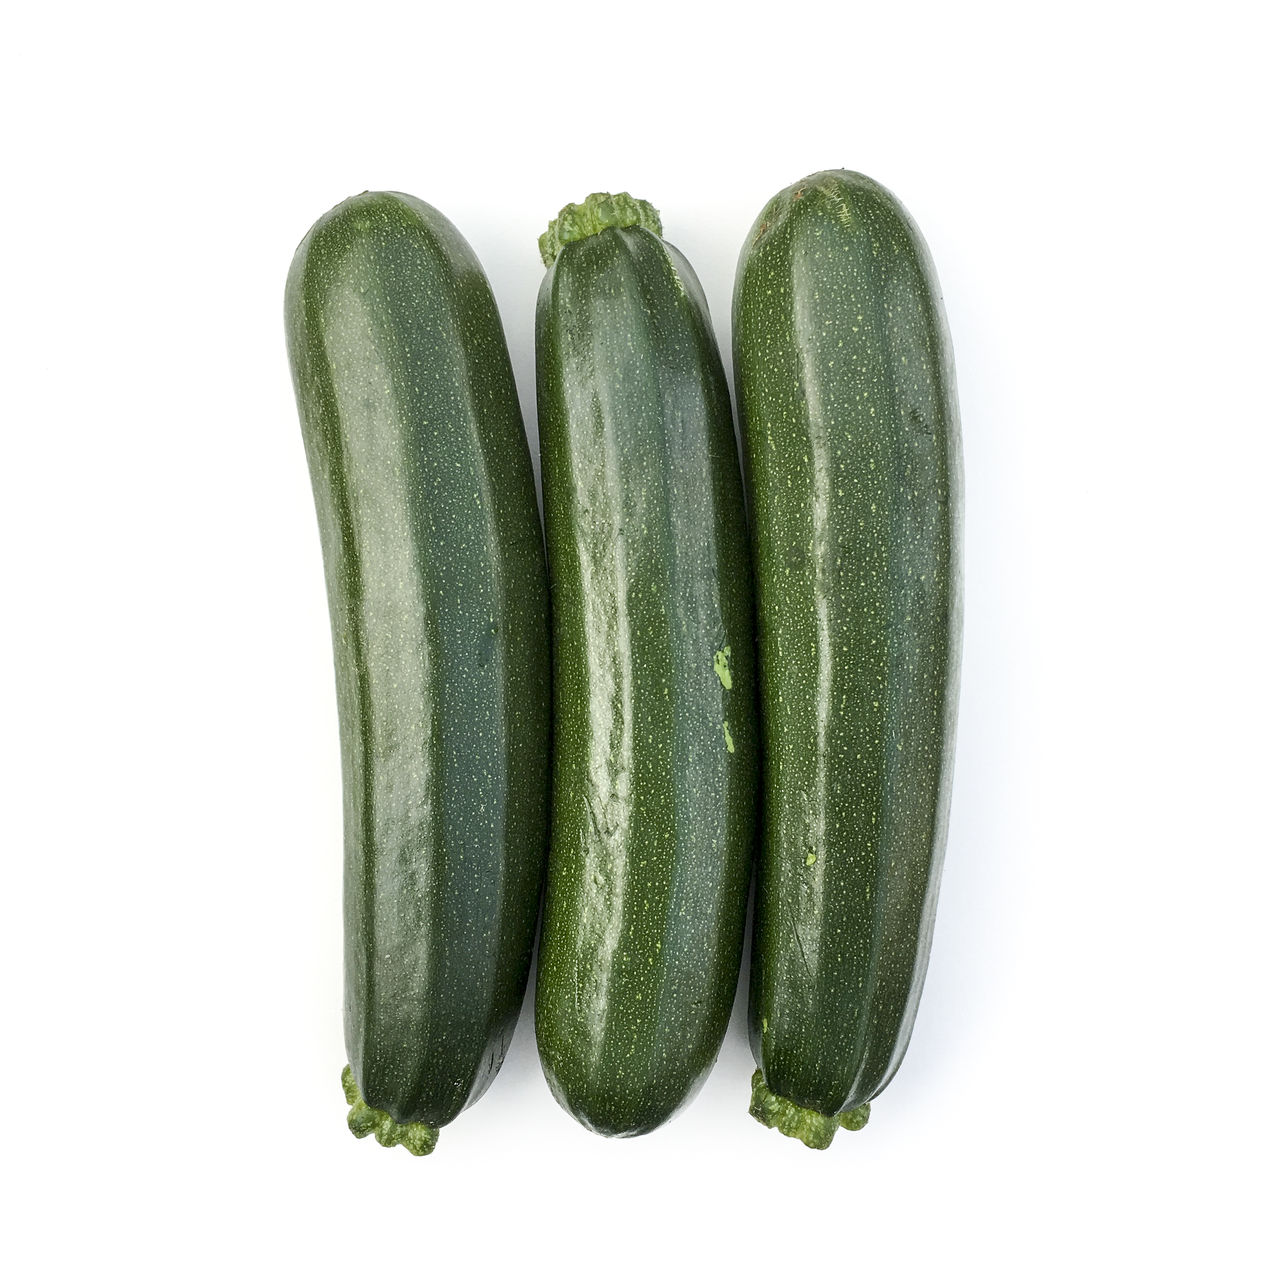 Courgettes Close-up Copy Space Courgette Courgettes Cut Out Food Food And Drink Freshness Green Green Color Group Of Objects Healthy Eating High Angle View Marrow Raw Food Still Life Studio Shot Vegetable White Background